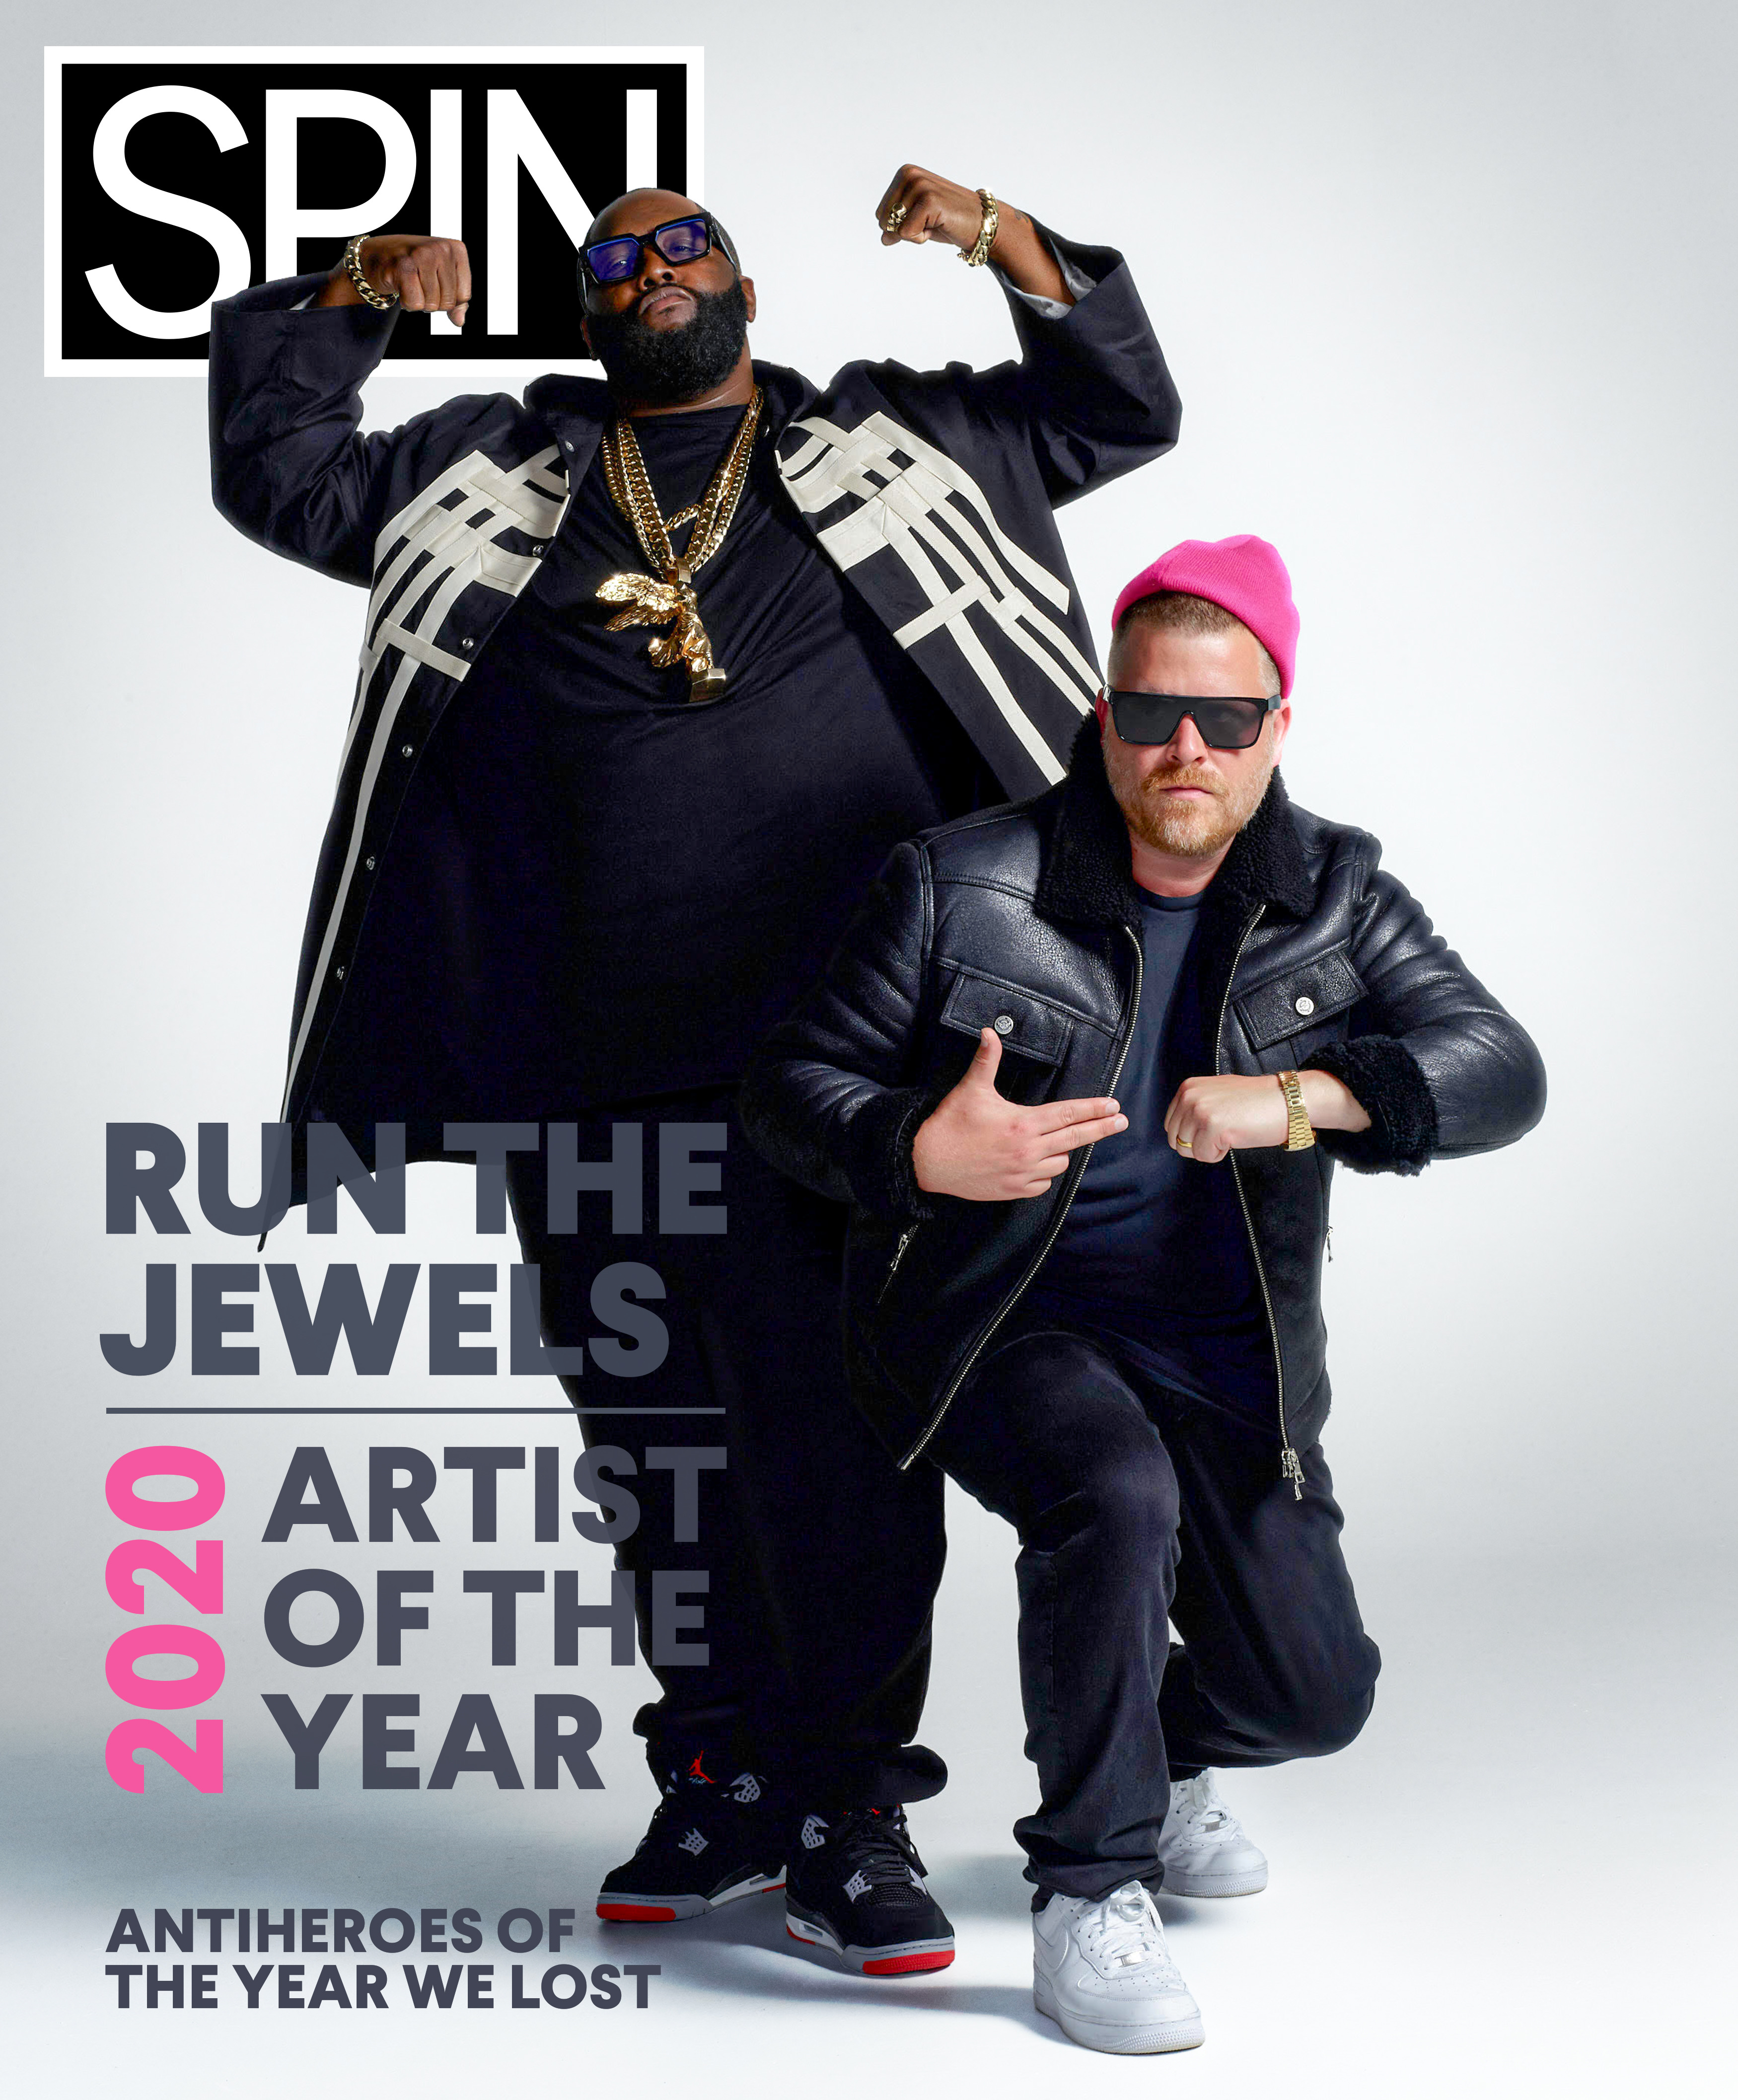 Artist of the Year: Run the Jewels